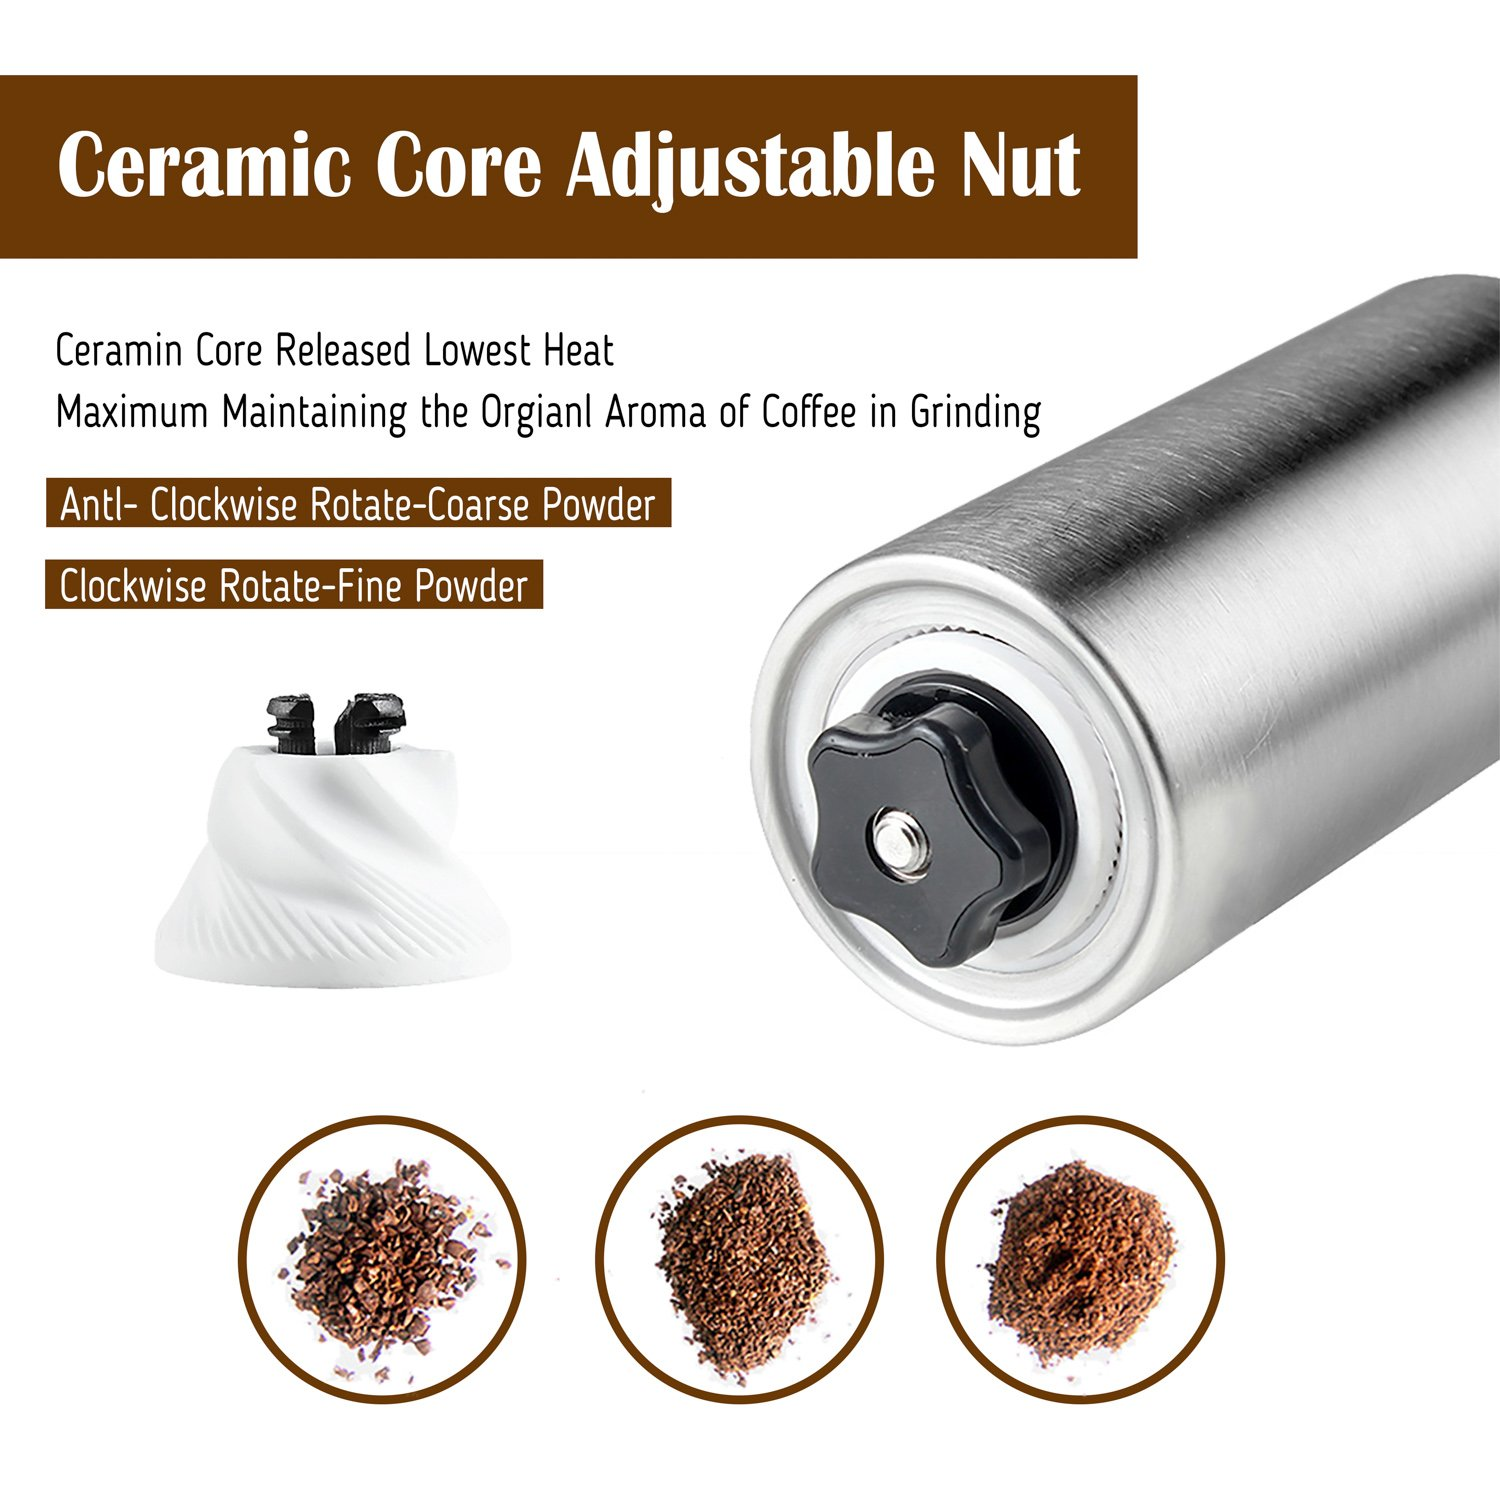 Mini Portable Home Kitchen Travel Coffee Bean Grinder with Adjustable Ceramic Core Aessdcan Manual Coffee Mill Coffee Grinder